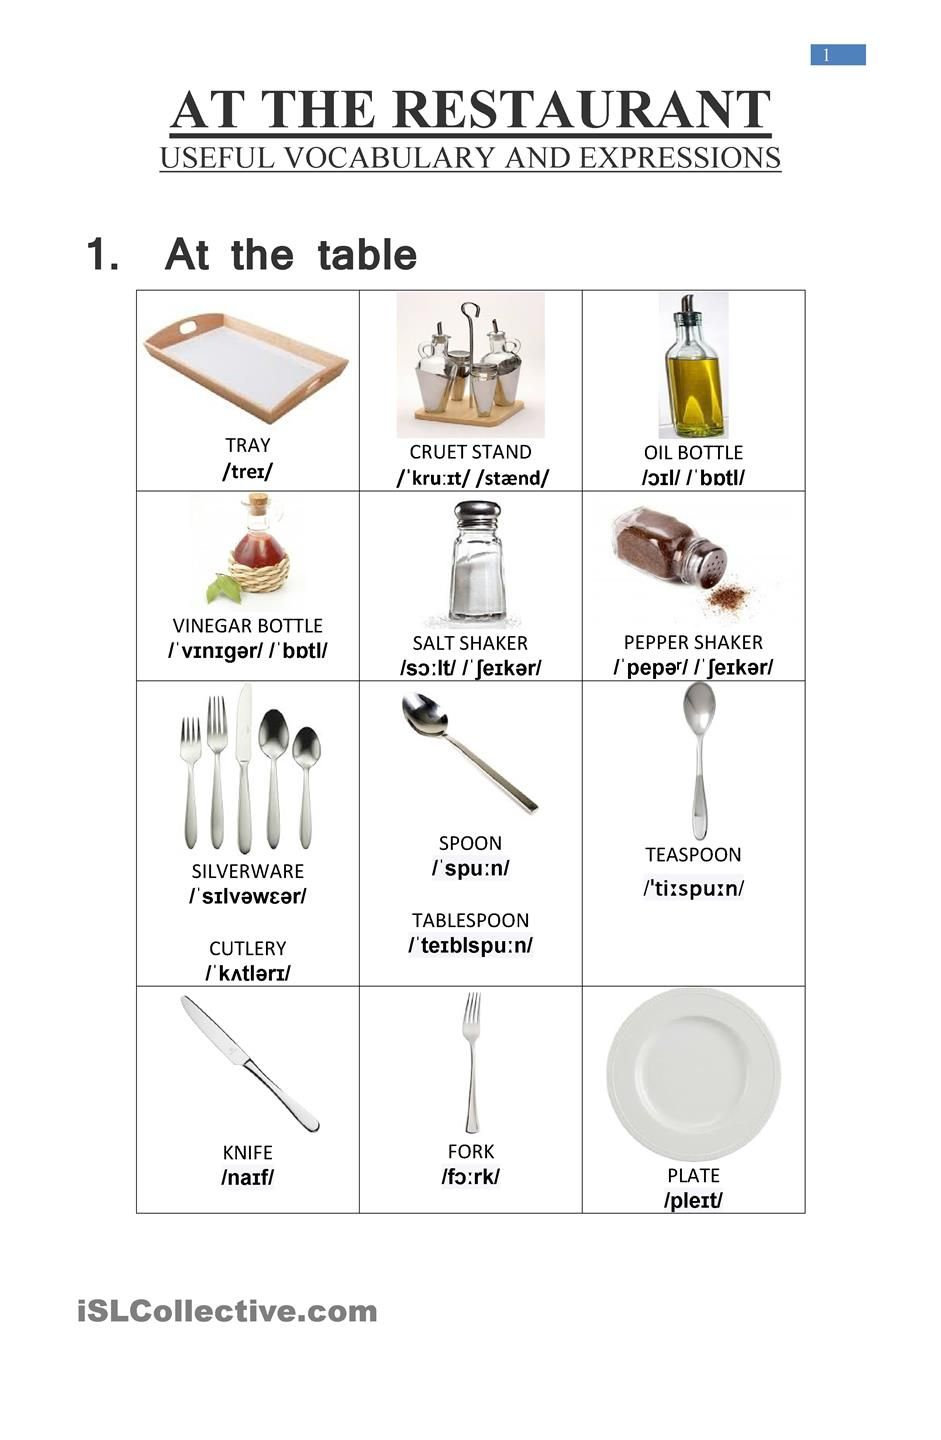 Food At The Restaurant Vocabulary Vocabulary Vocabulary Pictures Restaurant [ 1440 x 941 Pixel ]